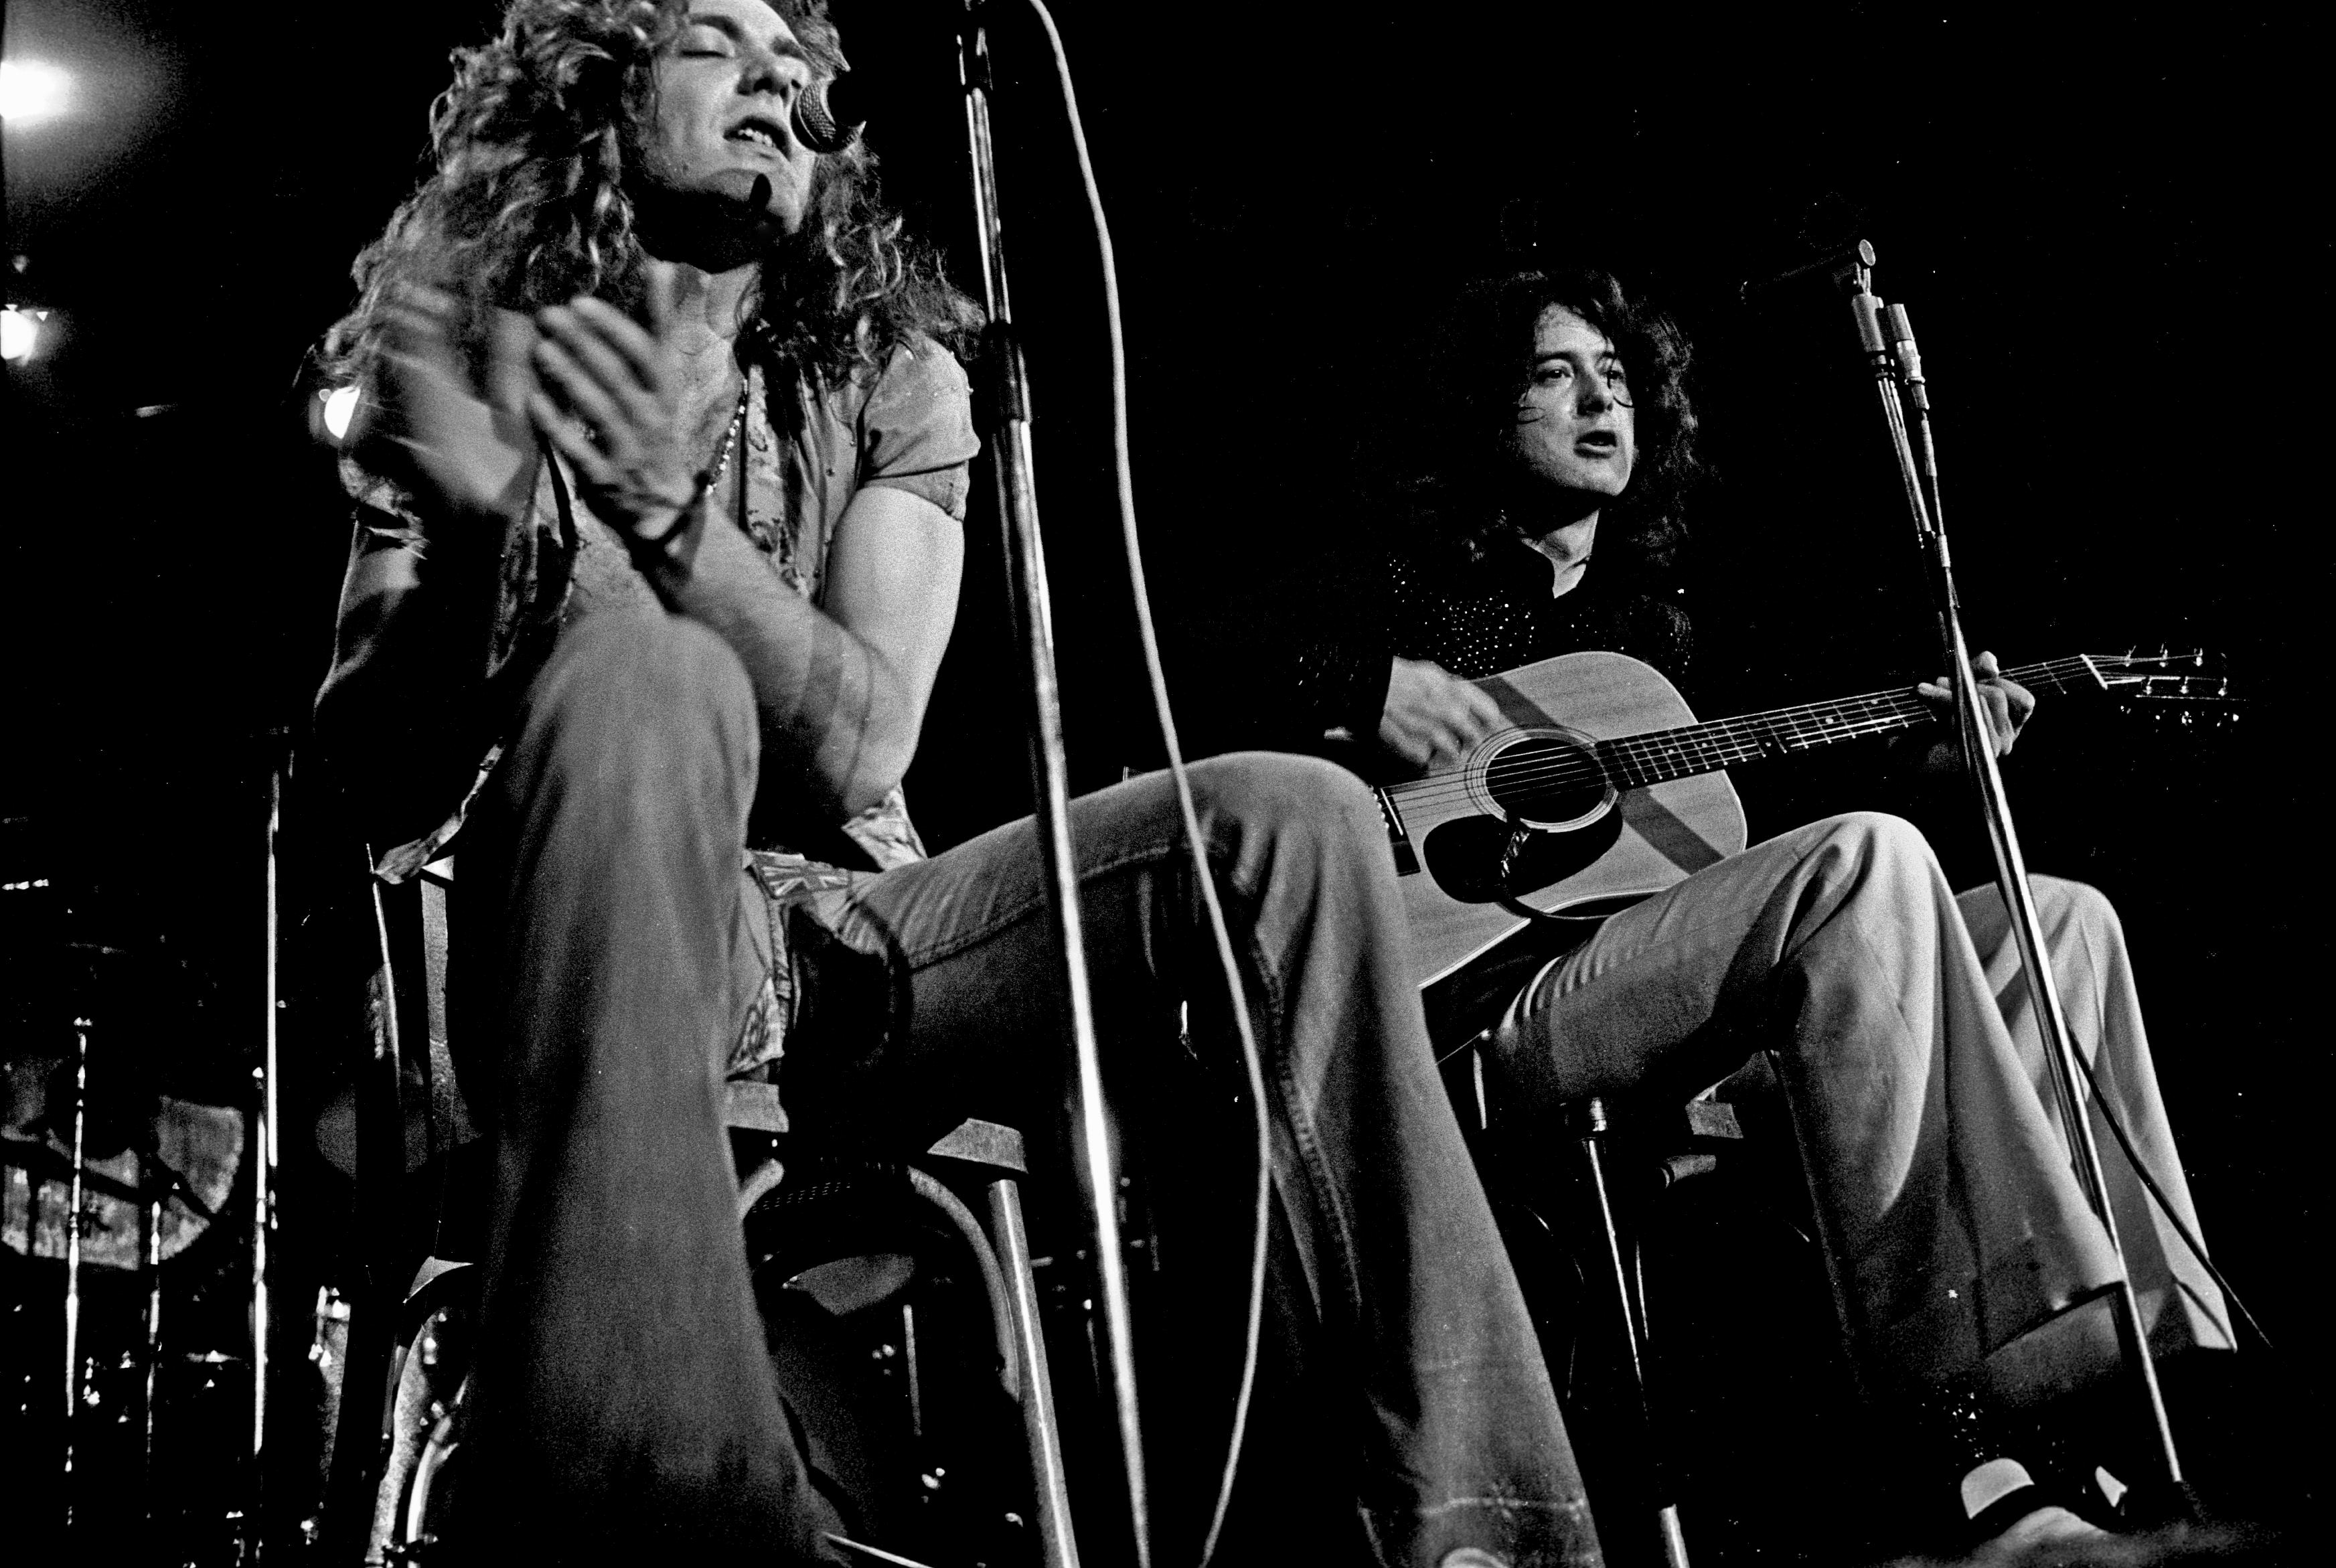 Led Zeppelin – wallpaper image -Led Zeppelin 2203730017